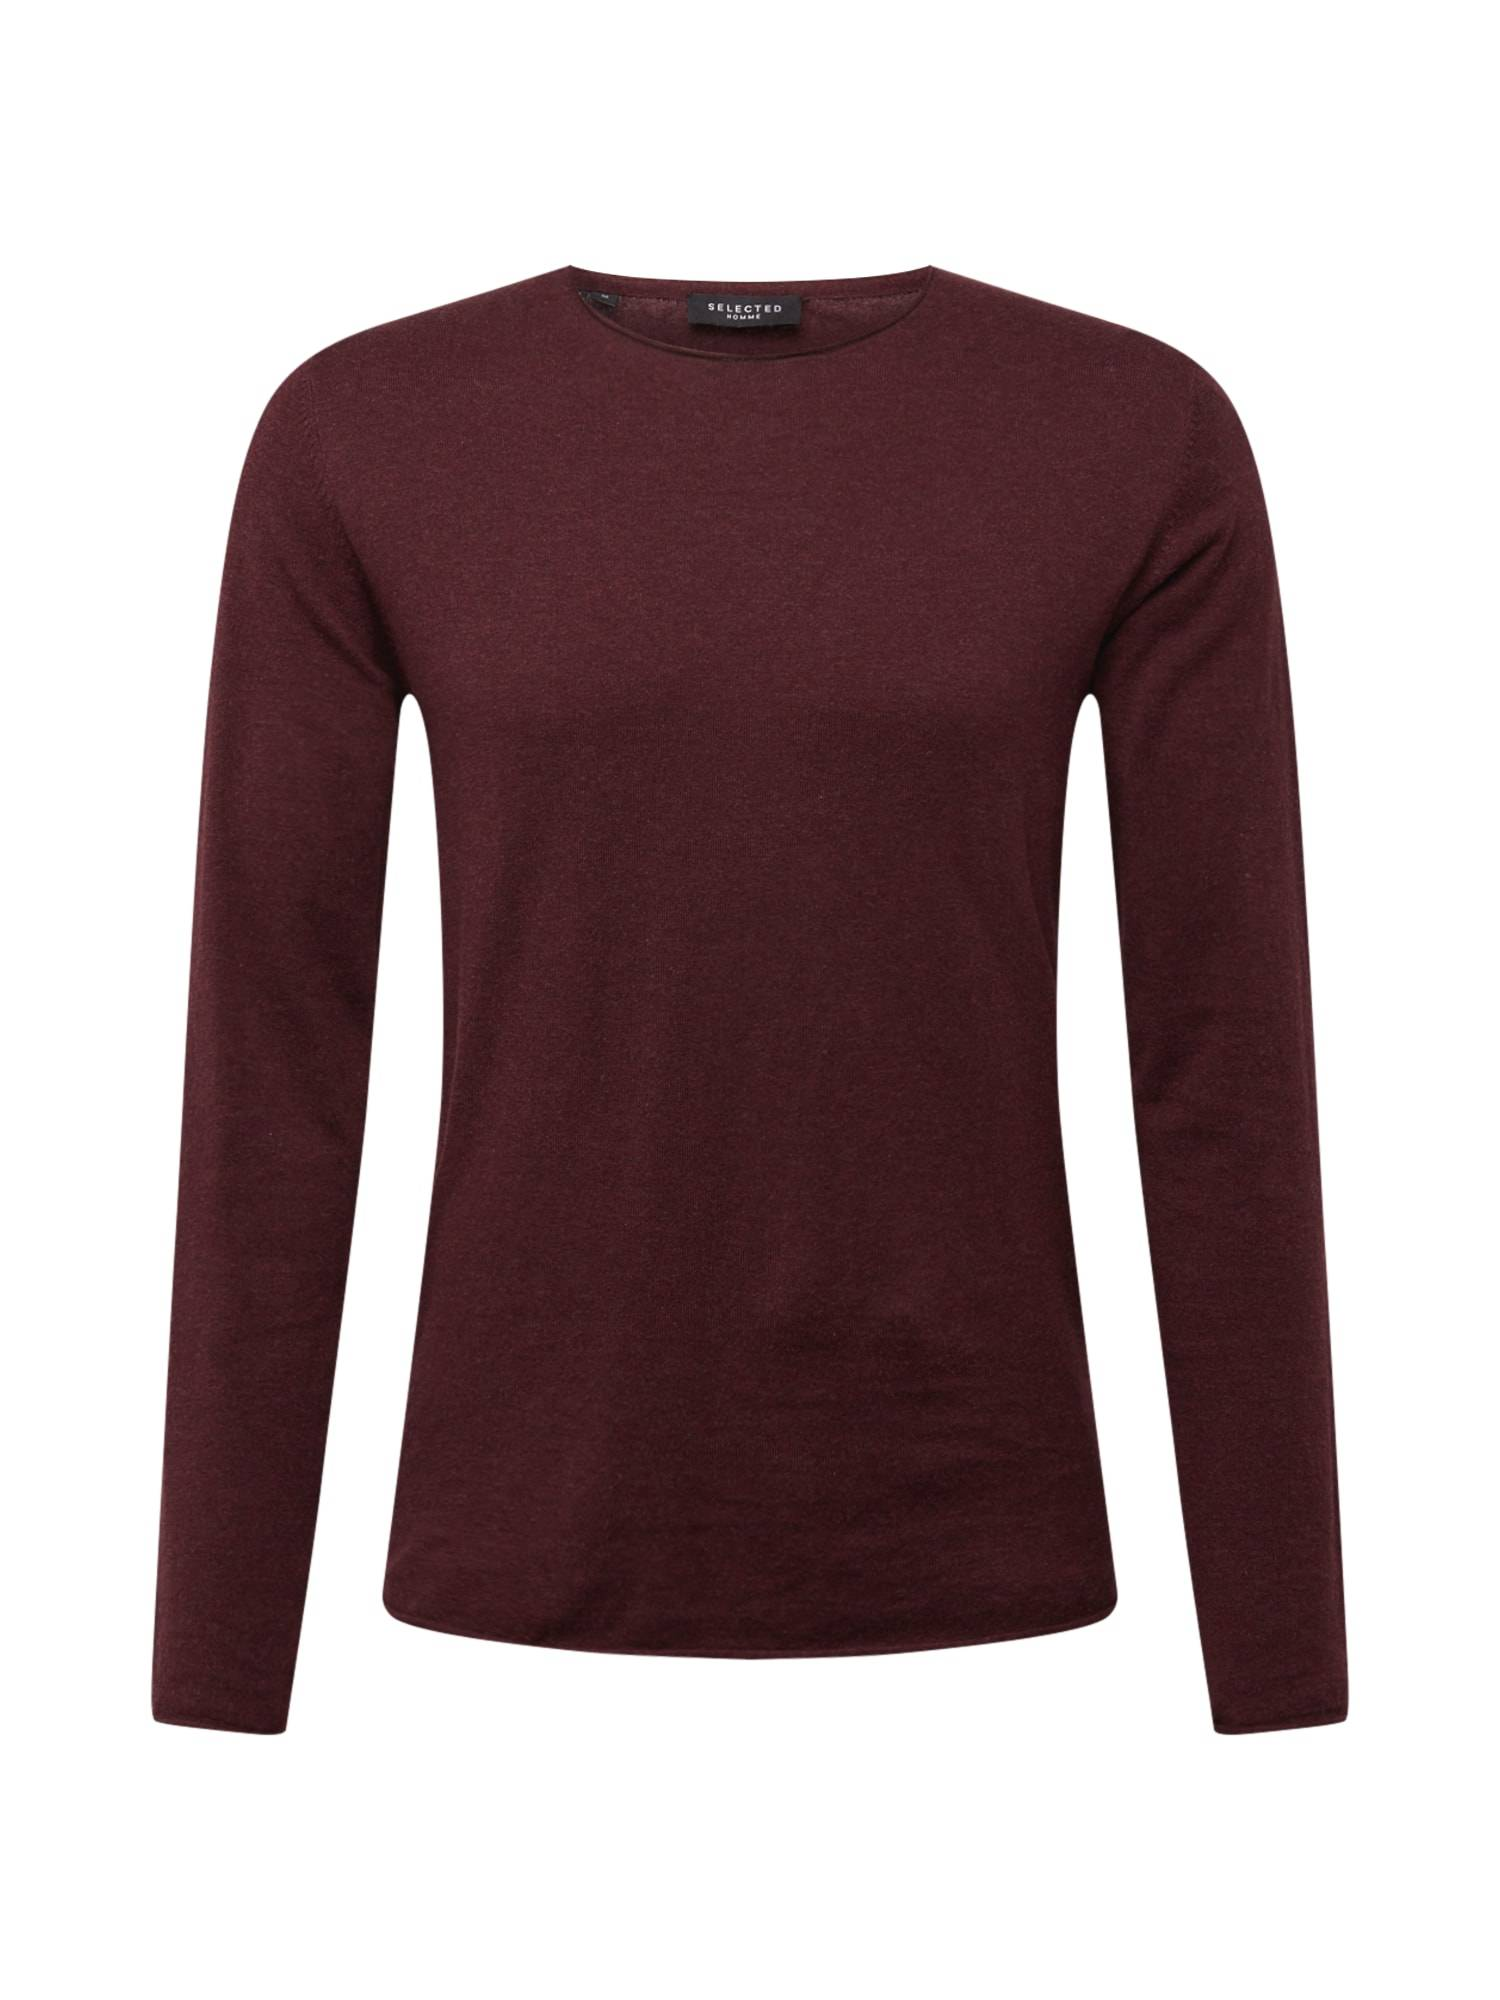 SELECTED HOMME Pull-over  - Rouge - Taille: M - male